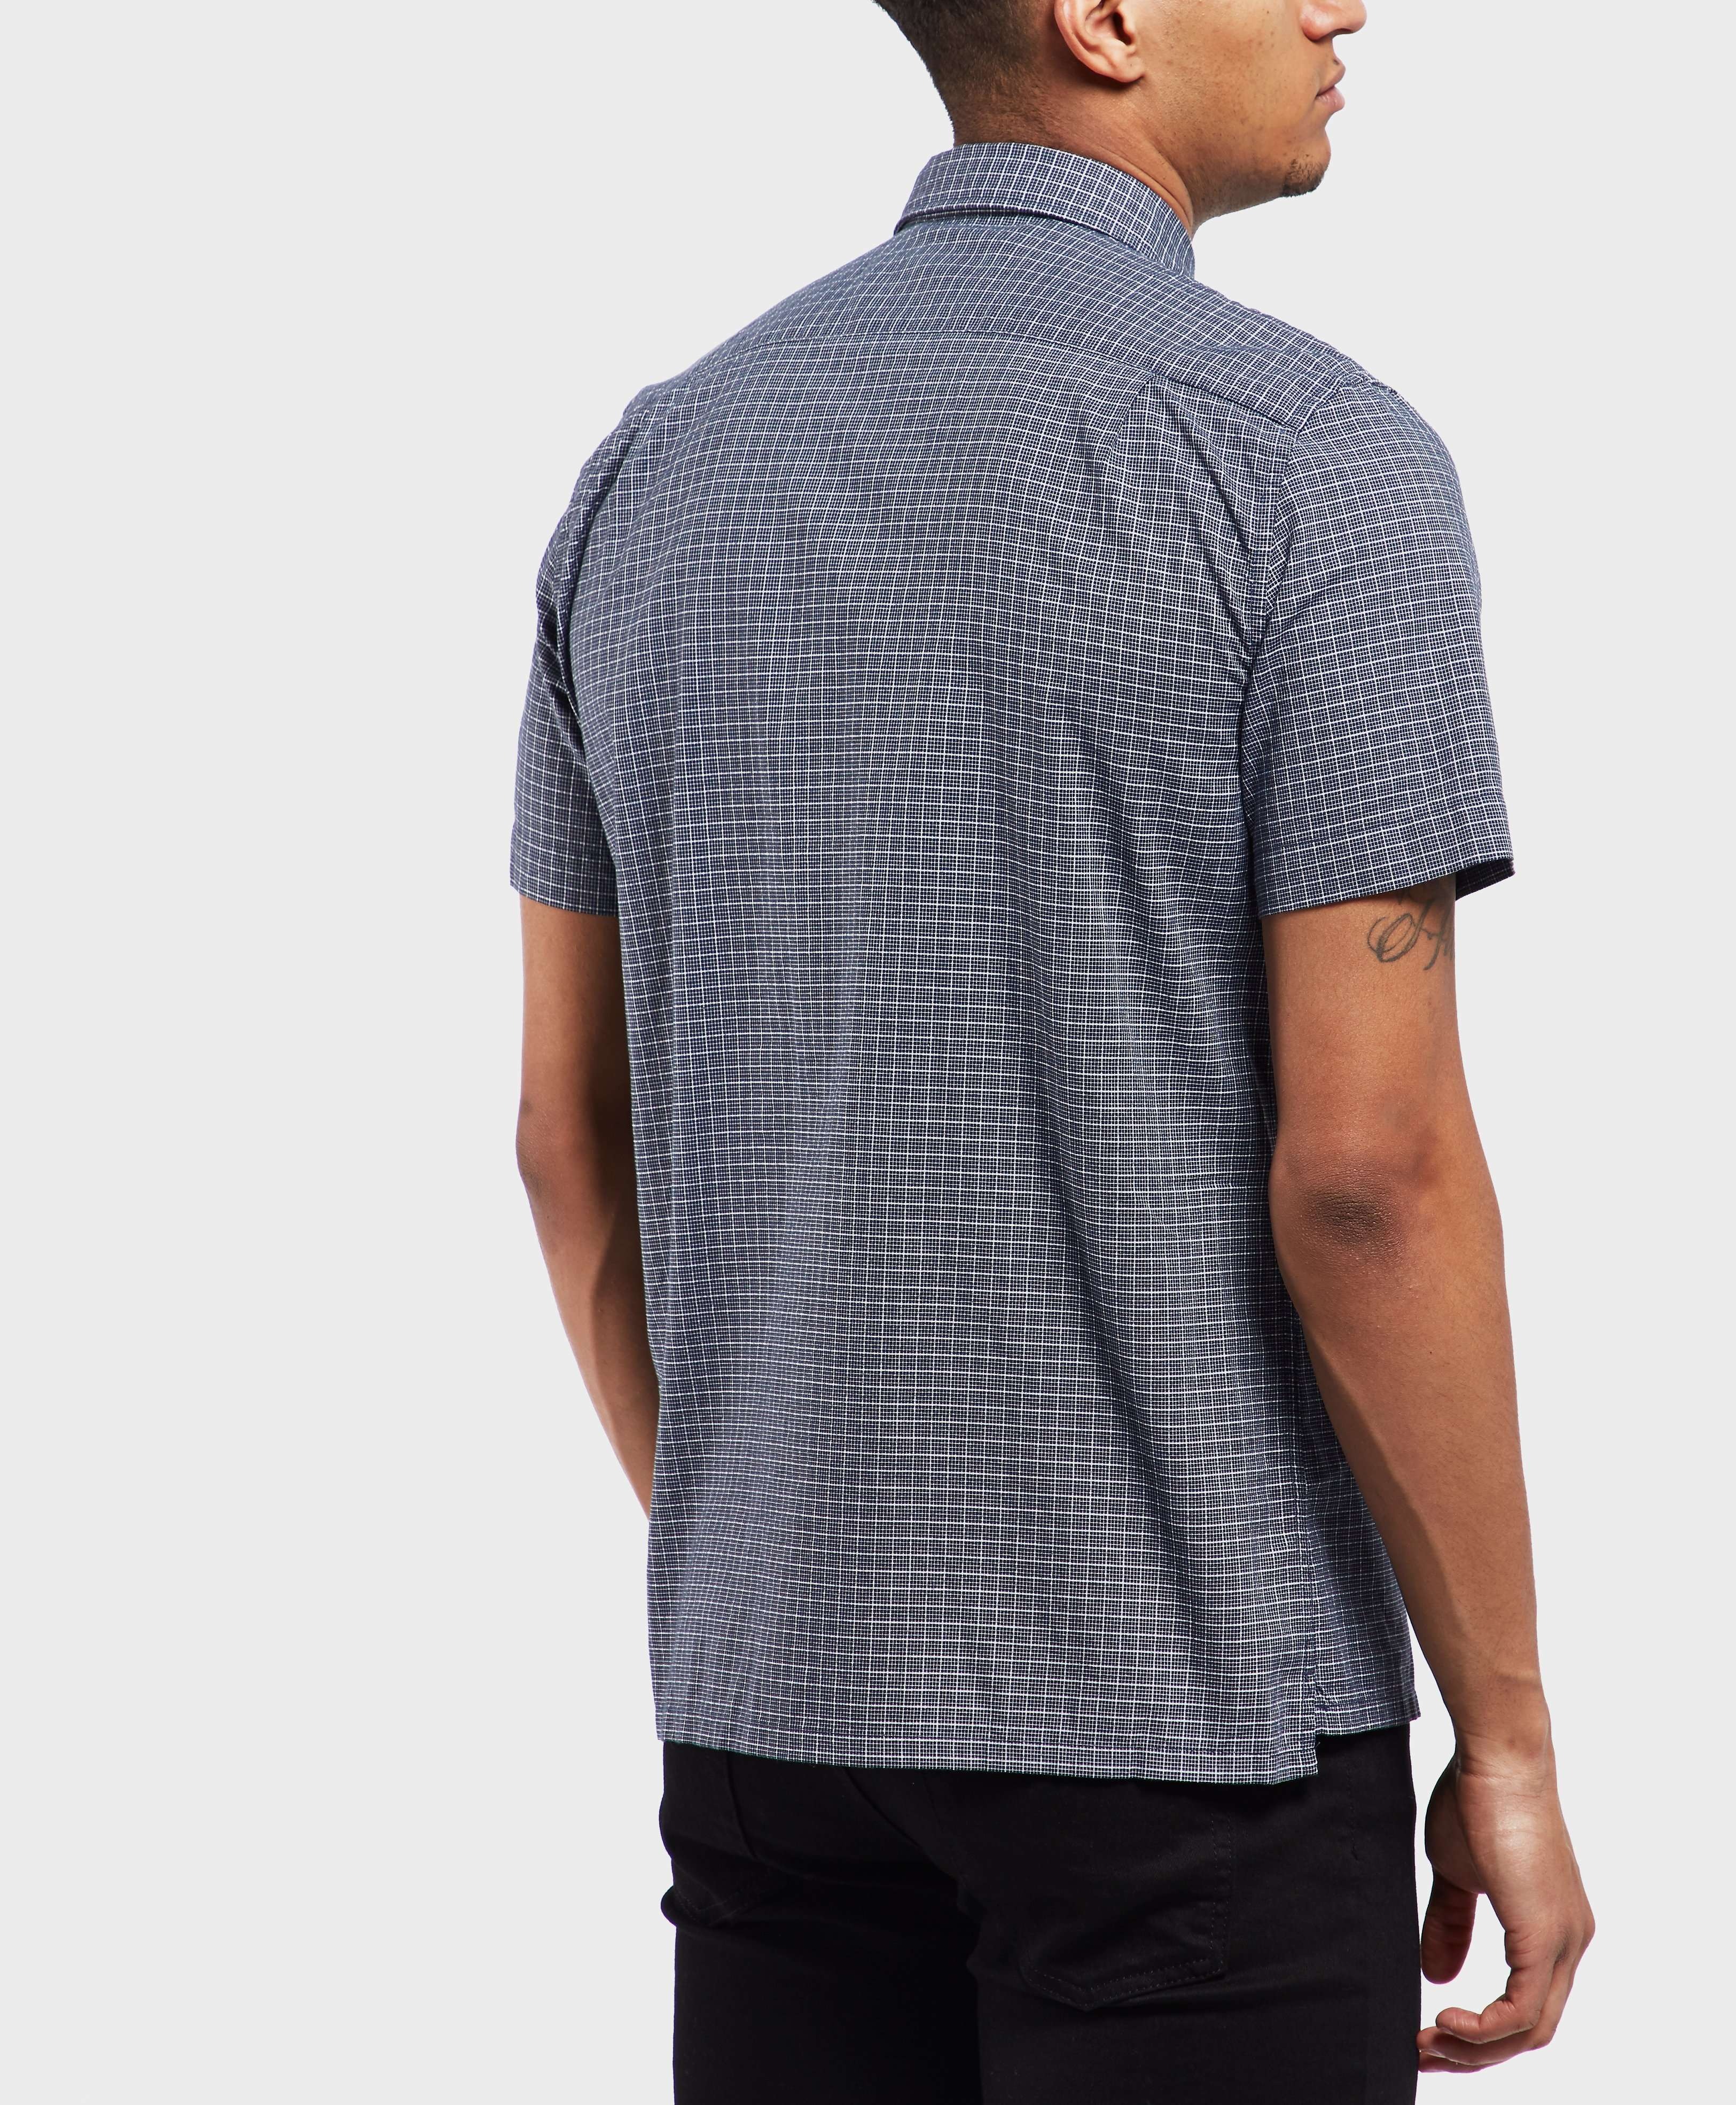 Lacoste Jacquard Short Sleeve Shirt - Online Exclusive